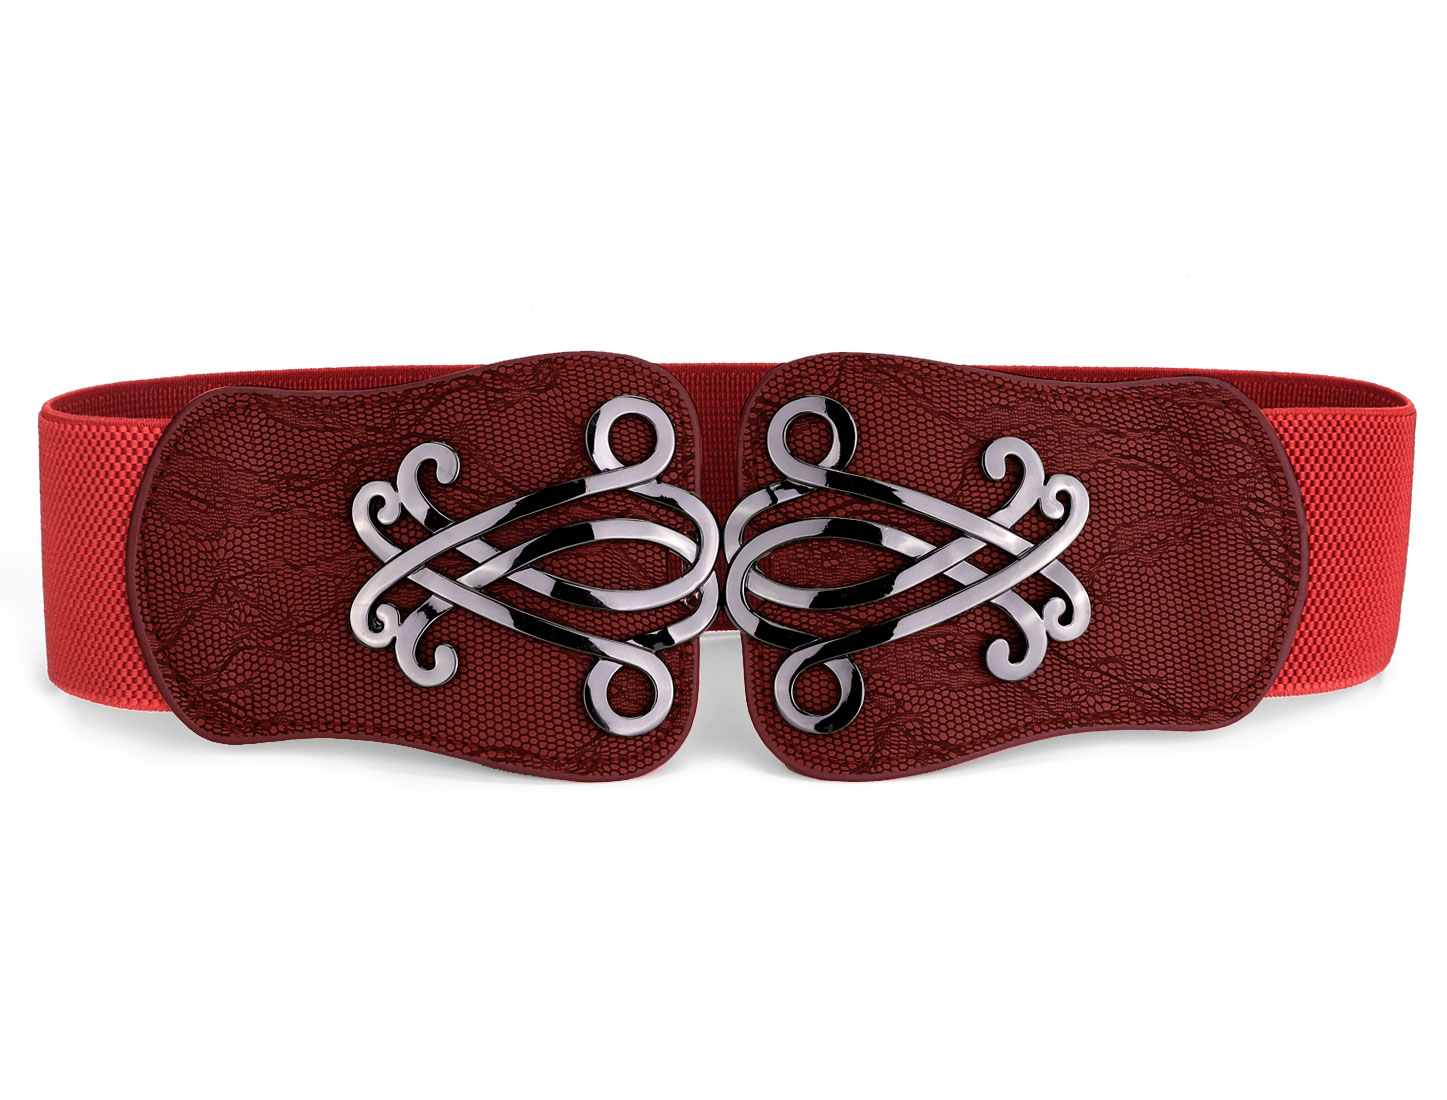 Snake Print Faux Leather Interlocking Buckle Elastic Cinch Belt Red for Women